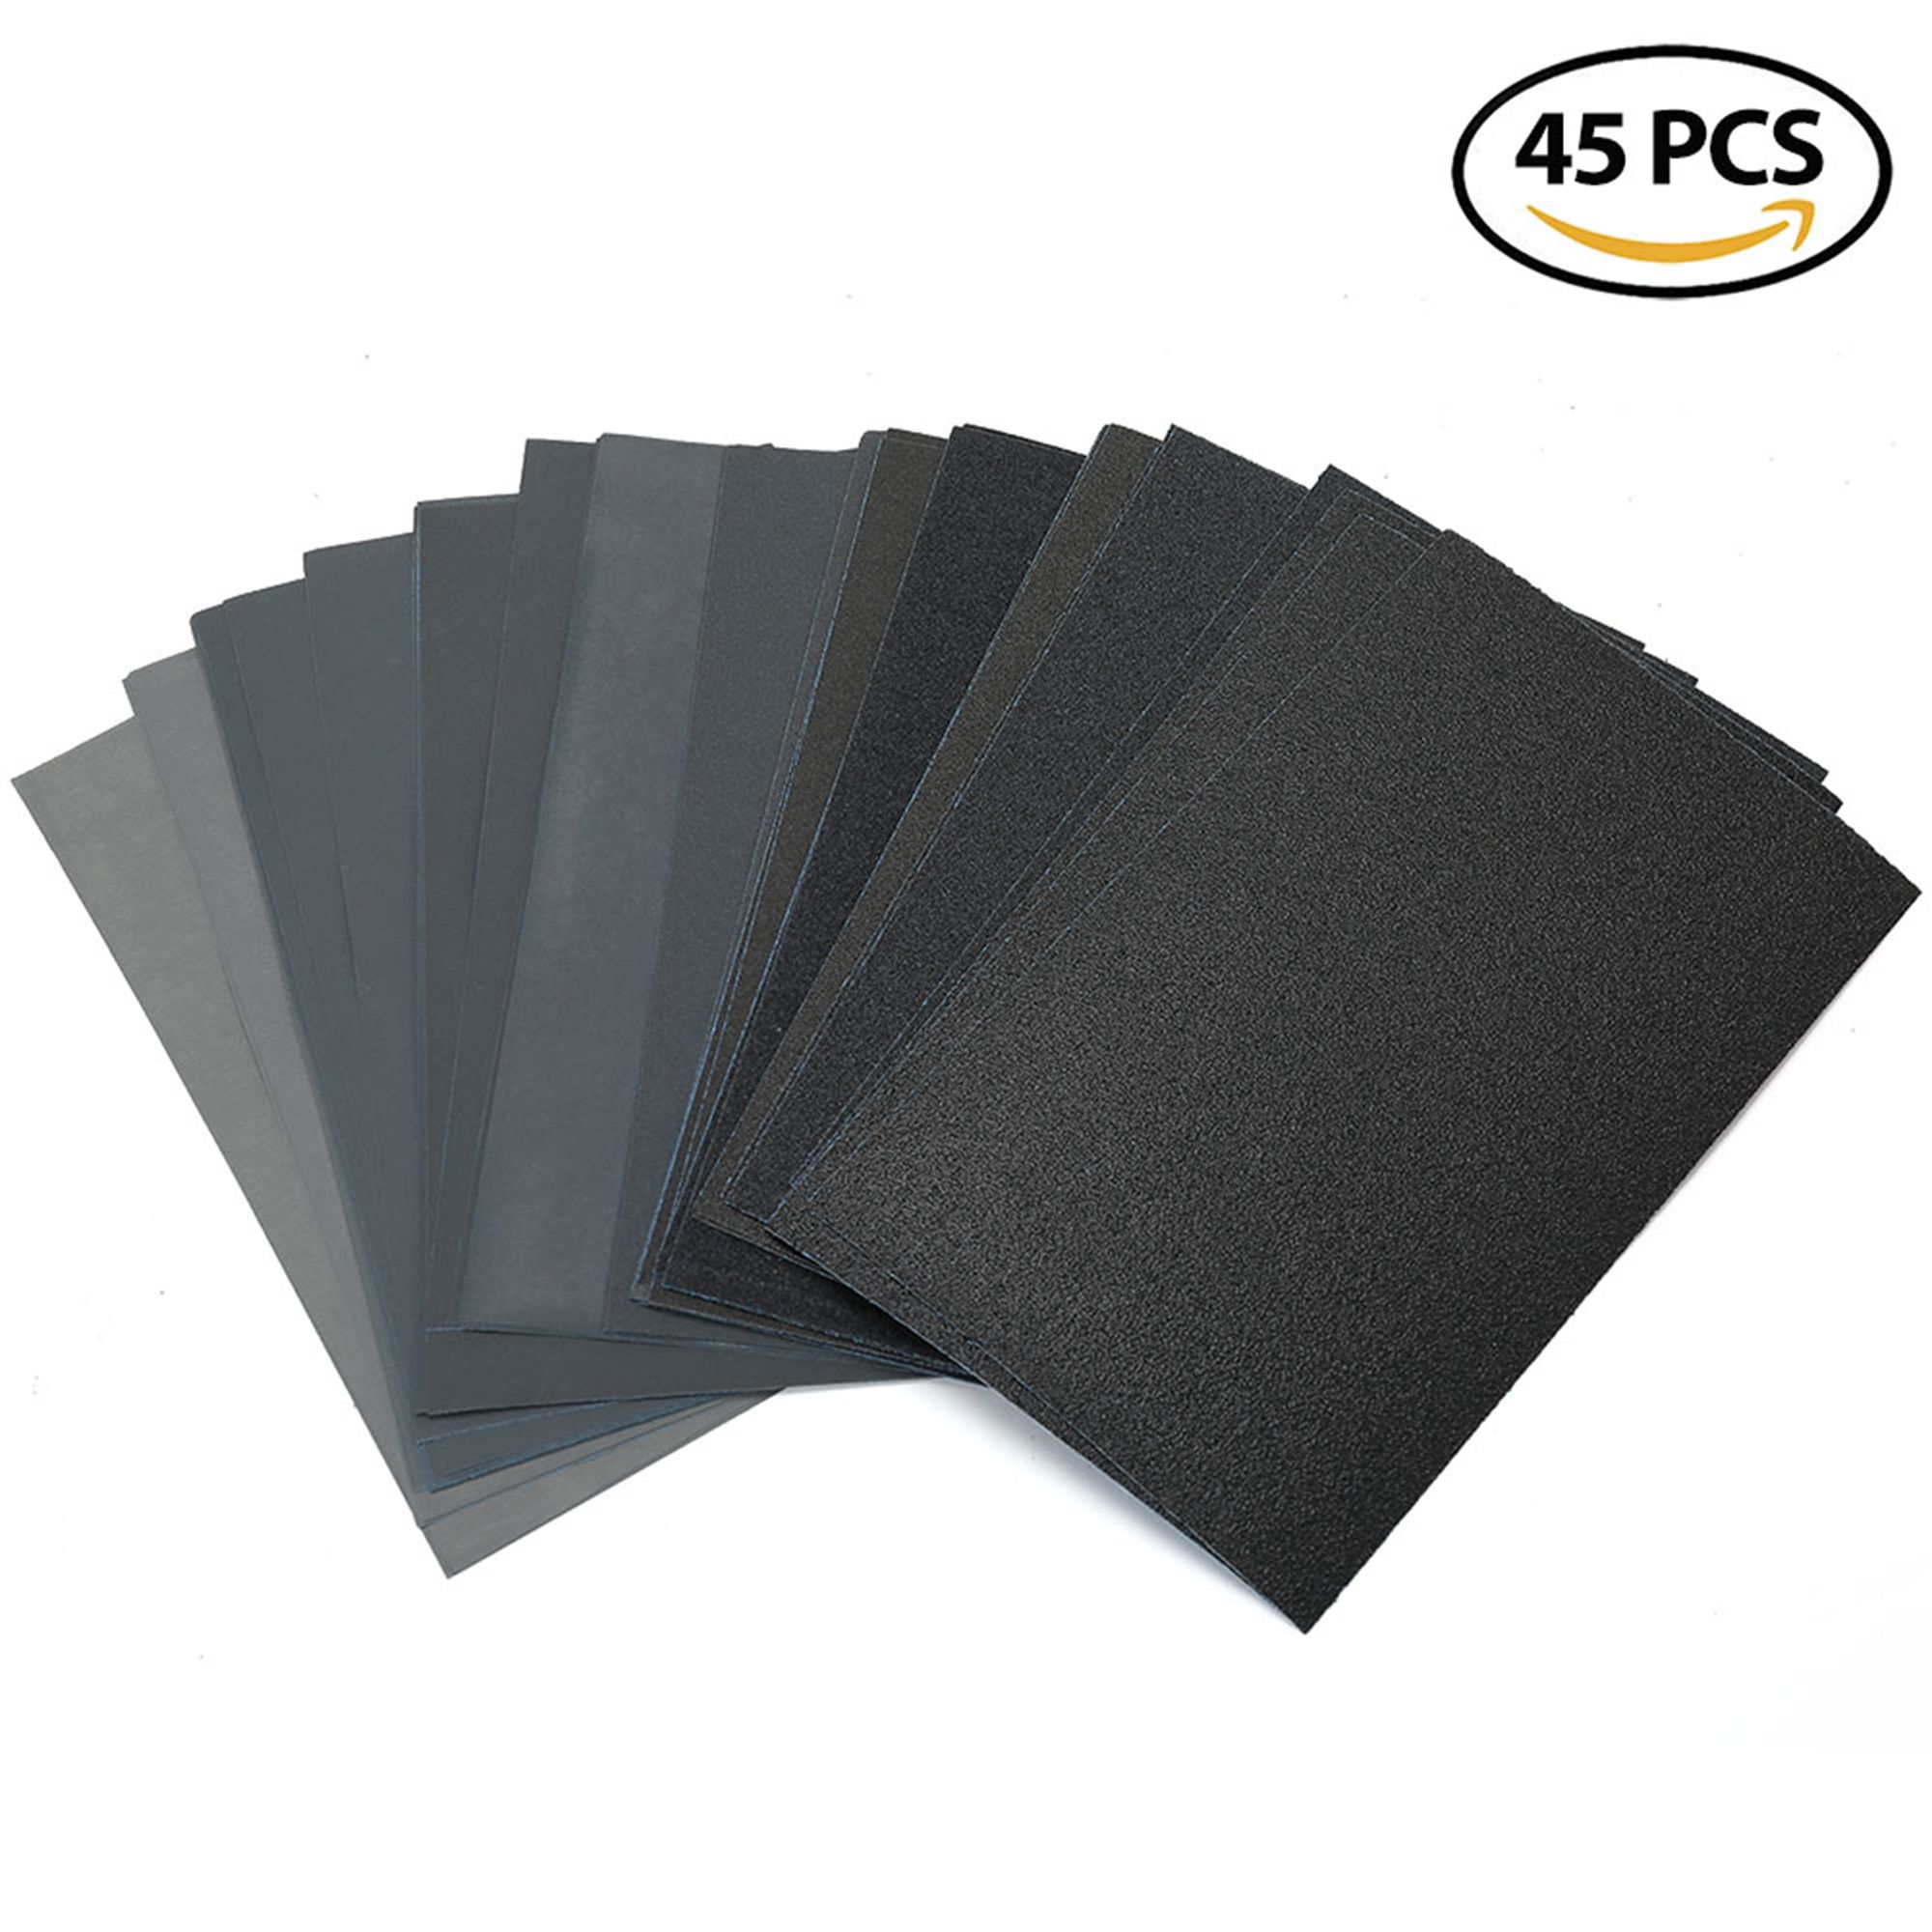 36 grit sandpaper sheets counter wash basin